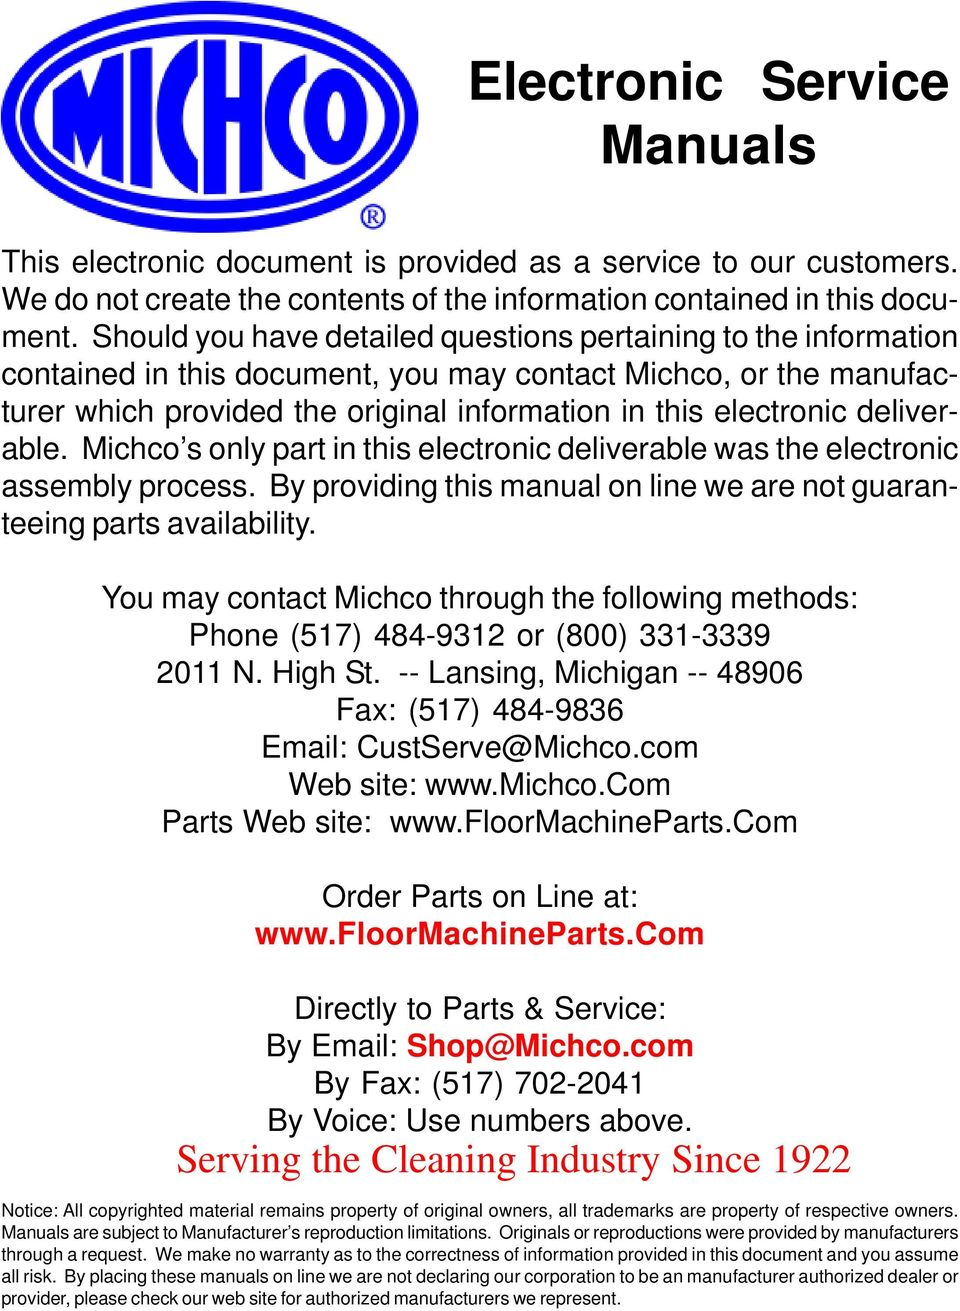 deliverable. Michco s only part in this electronic deliverable was the electronic assembly process. By providing this manual on line we are not guaranteeing parts availability.